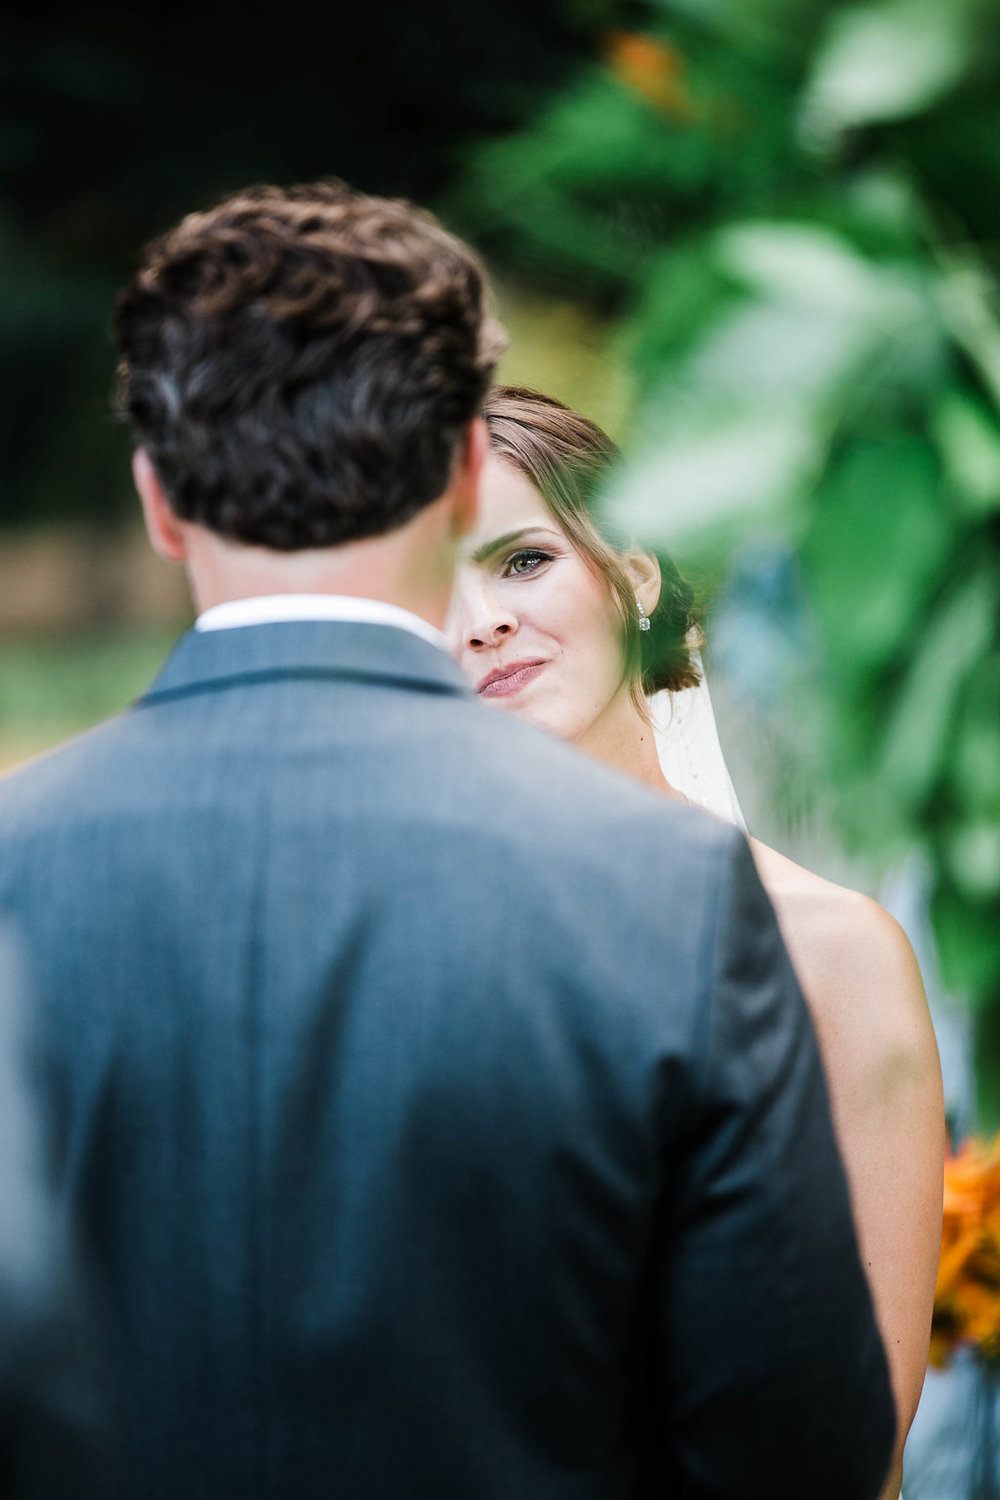 Erin+Tyson_The_Kelley_Farm_Wedding_by_Adina_Preston_Weddings_668.JPG